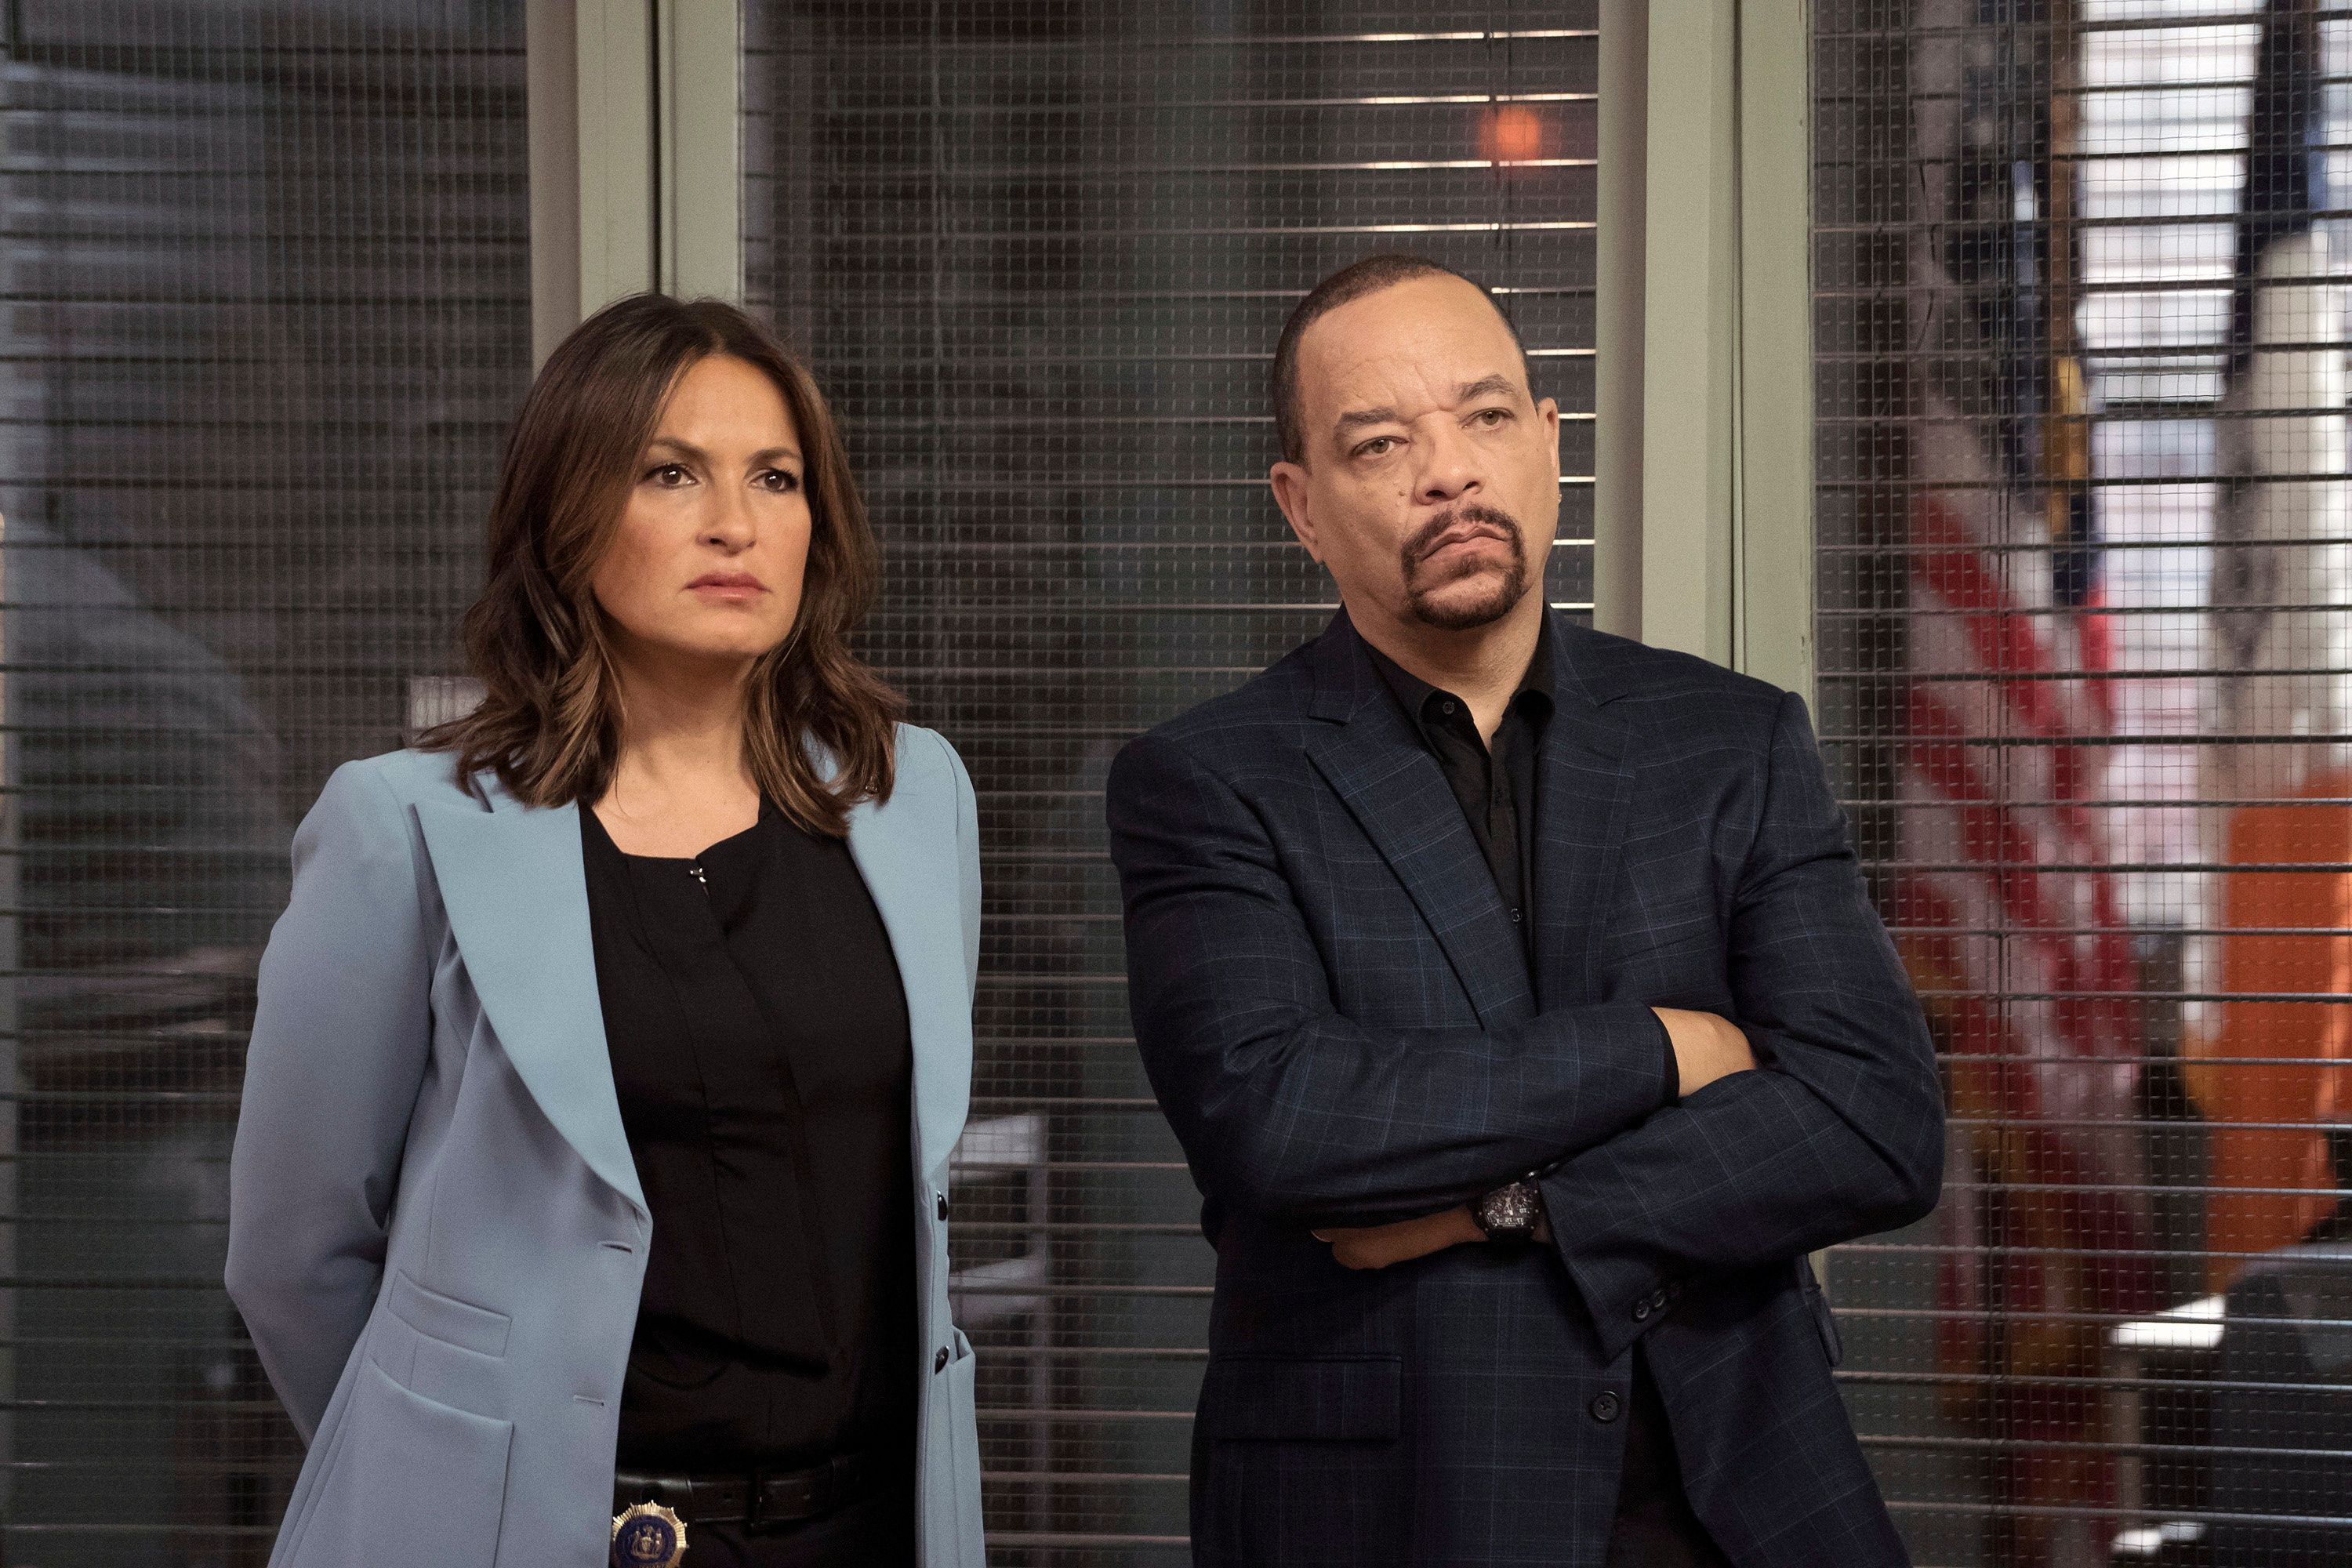 LAW & ORDER: SPECIAL VICTIMS UNIT -- 'Making A Rapist' Episode 1802 -- Pictured: (l-r) Mariska Hargitay as Olivia Benson, Ice-T as Odafin Tutuola -- (Photo by: Peter Kramer/NBC/NBCU Photo Bank via Getty Images)